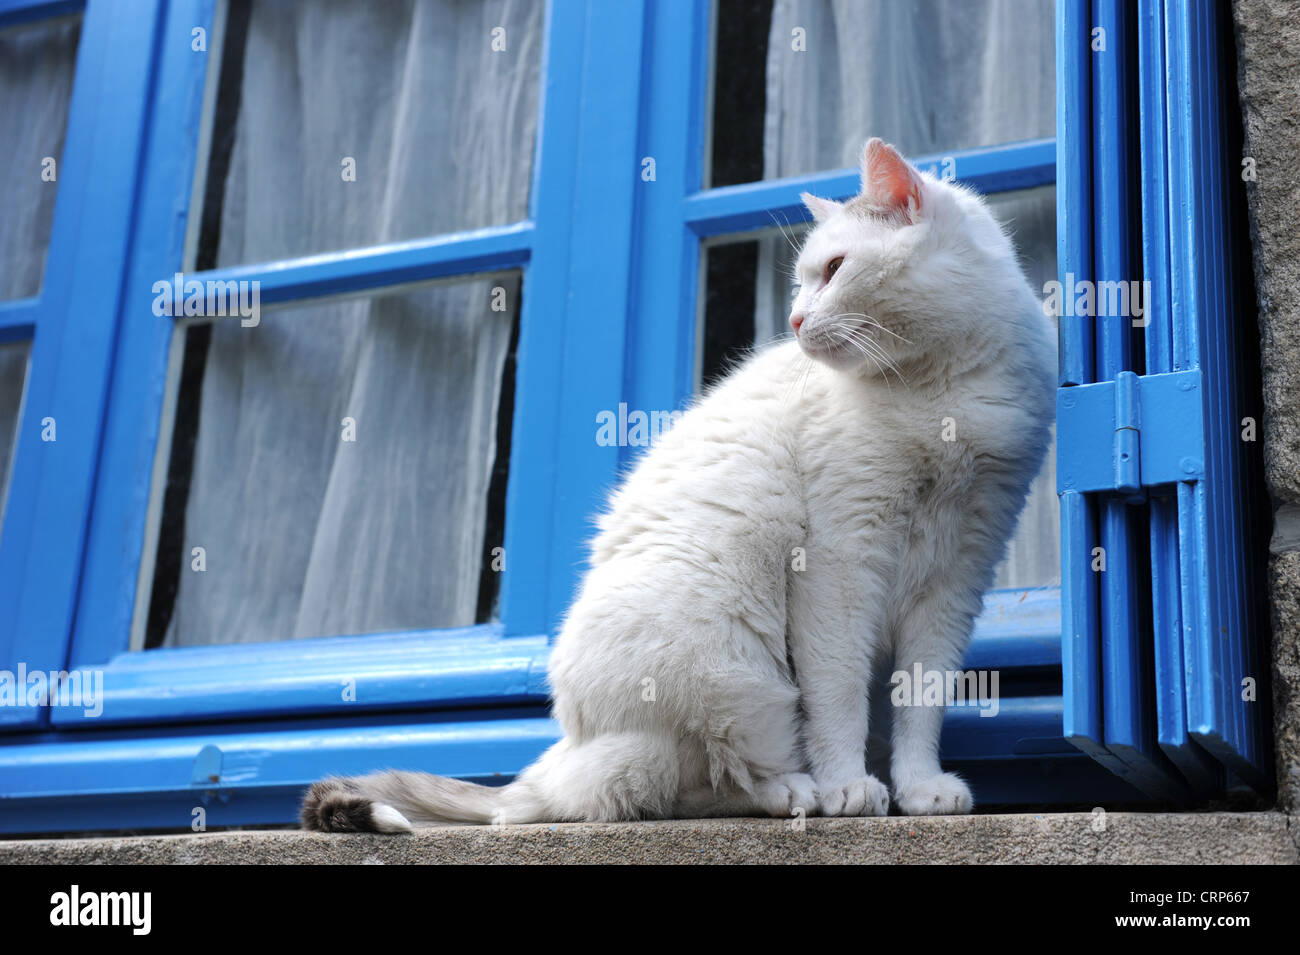 White cat on window ledge in French village - Stock Image